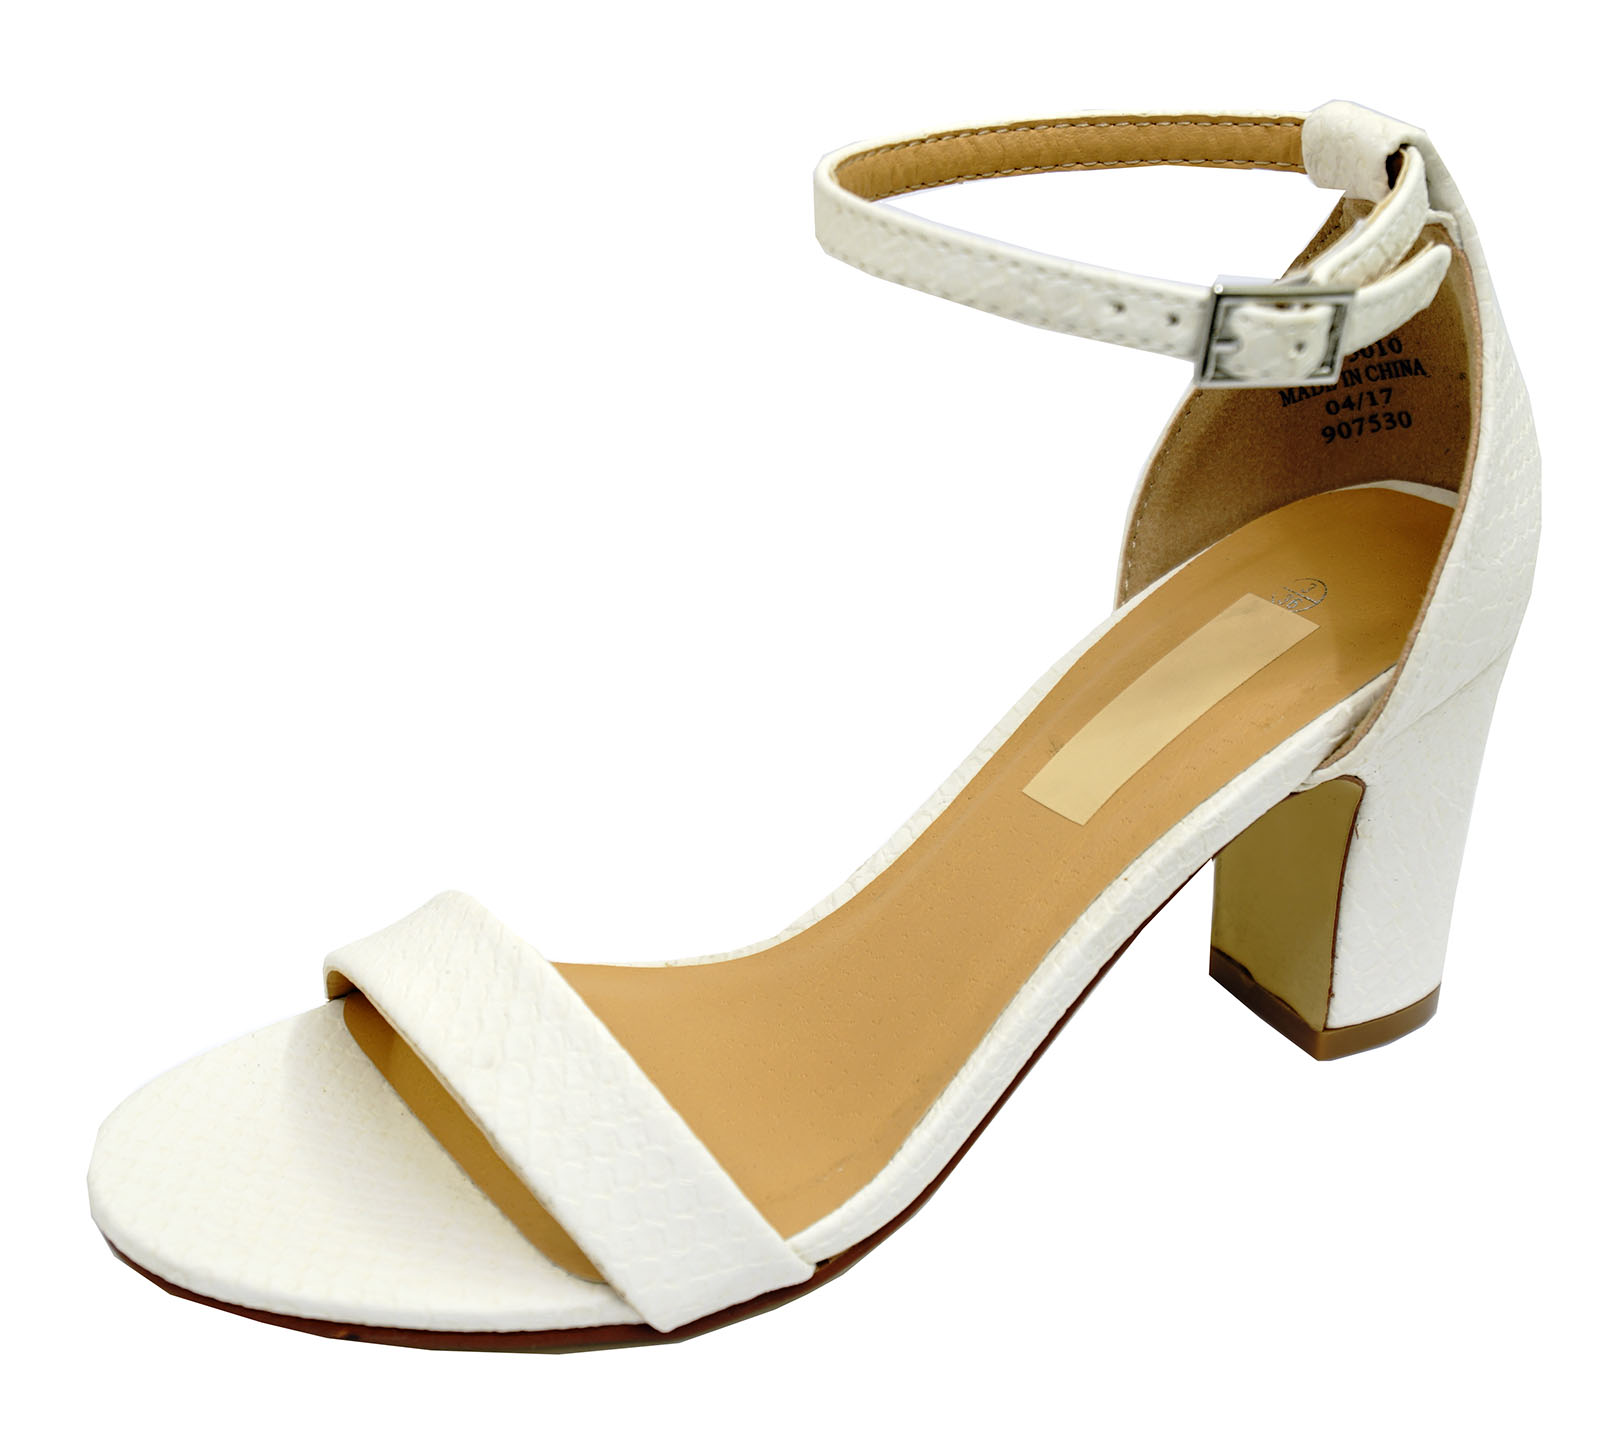 LADIES-WHITE-ANKLE-STRAP-BLOCK-HEEL-PEEPTOE-SANDALS-HOLIDAY-COMFY-SHOES-UK-3-8 thumbnail 26